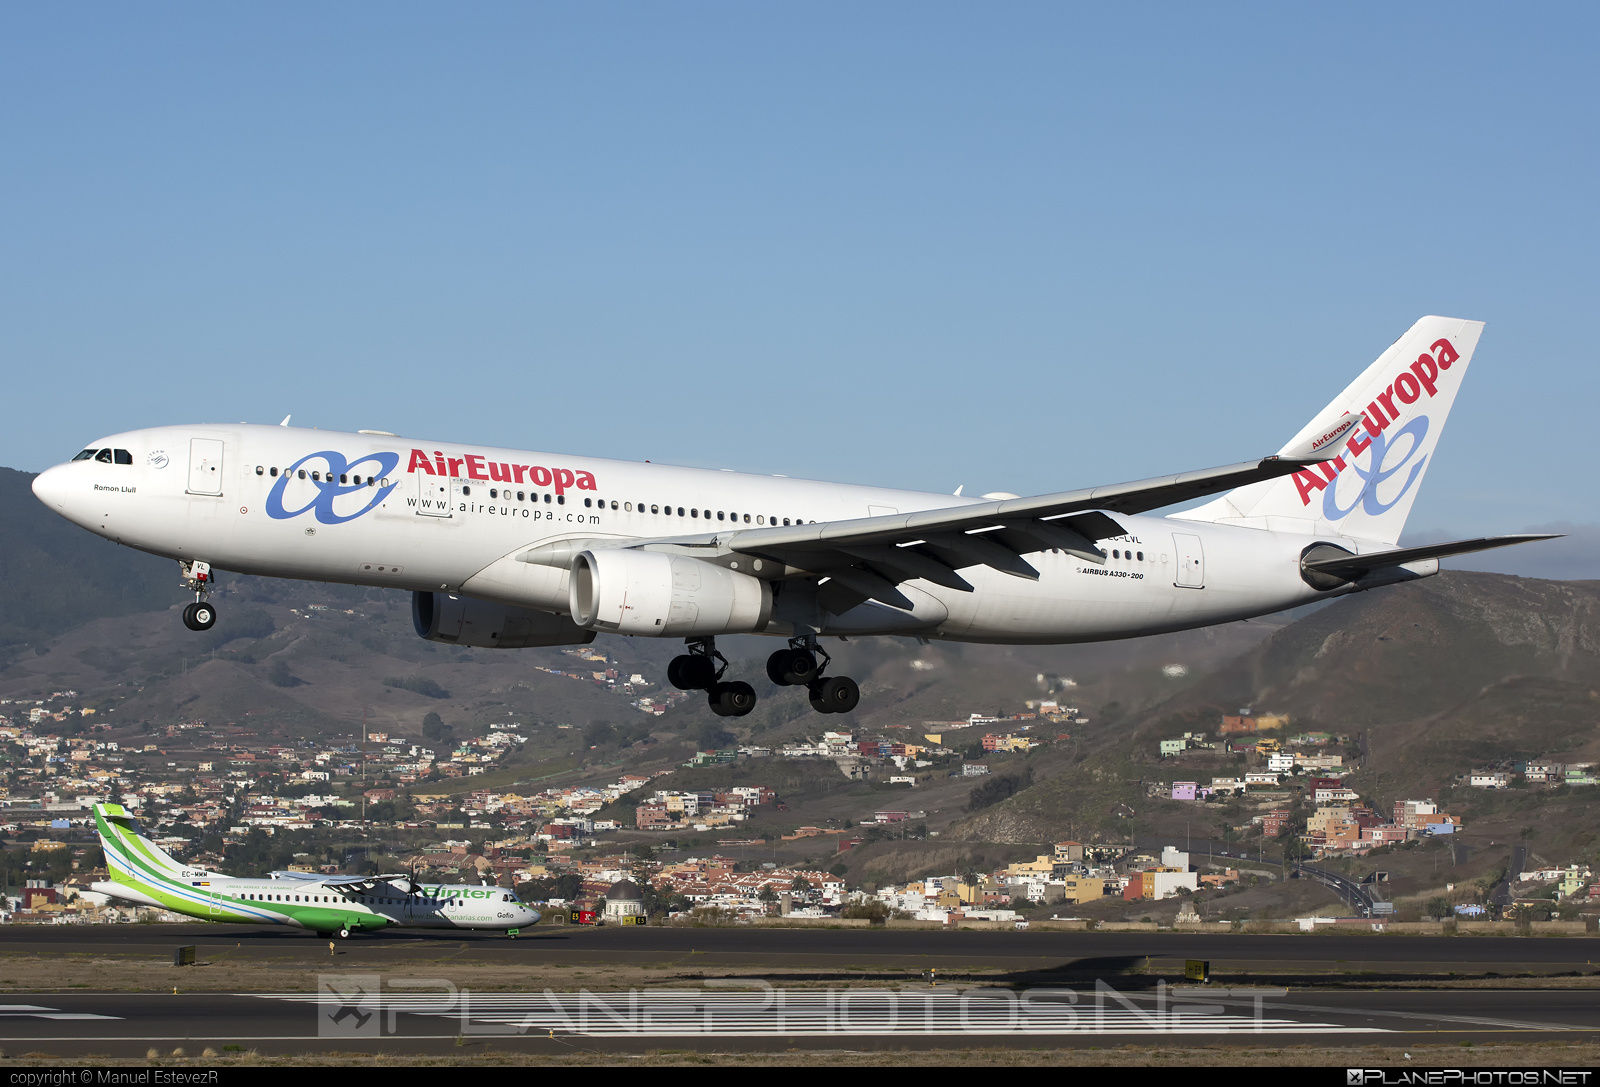 Airbus A330-243 - EC-LVL operated by Air Europa #a330 #a330family #airbus #airbus330